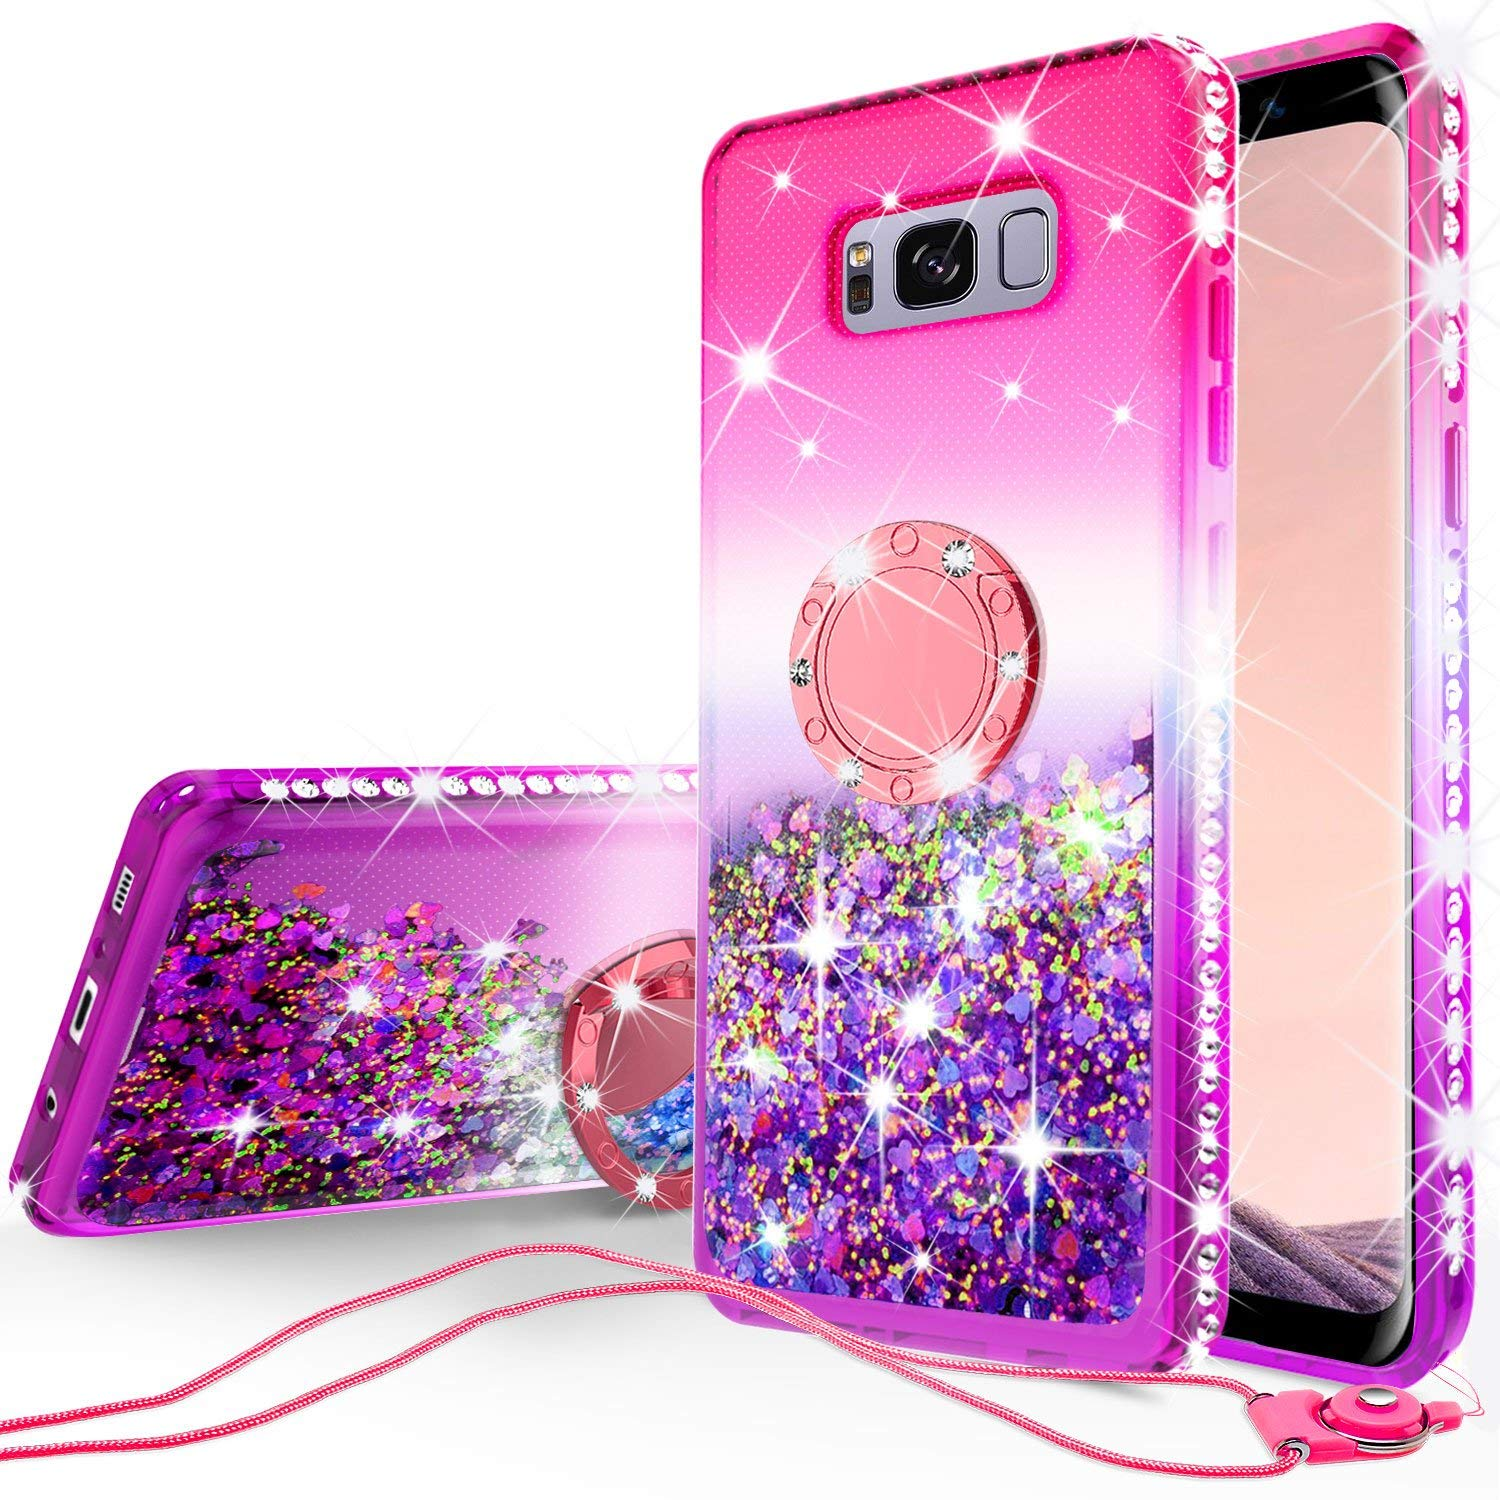 Samsung Galaxy S8 Plus Liquid Floating Quicksand Glitter Phone Case Kickstand,Bling Diamond Bumper Ring Stand Protective Galaxy S8 Plus Case for Girl Women Hot Pink